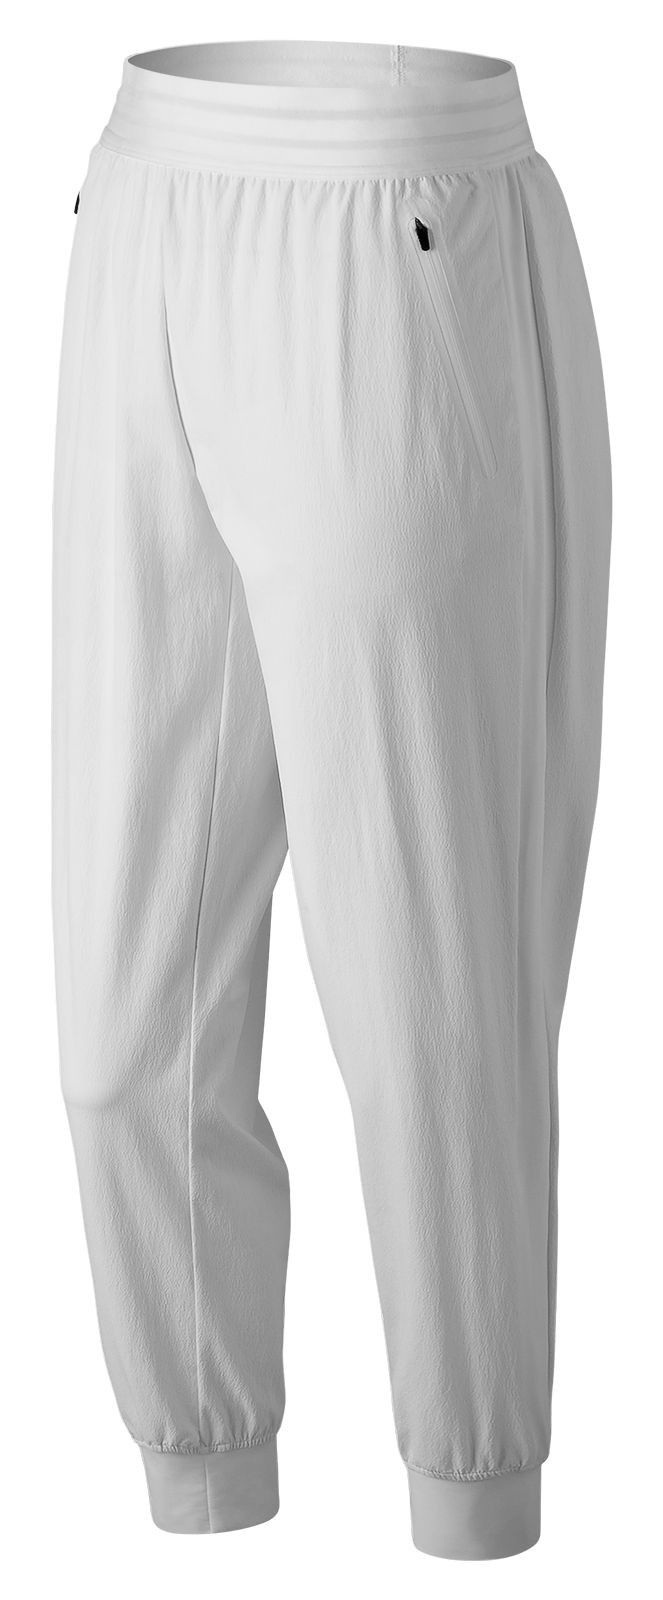 Women's Sport Style Select Woven Pant